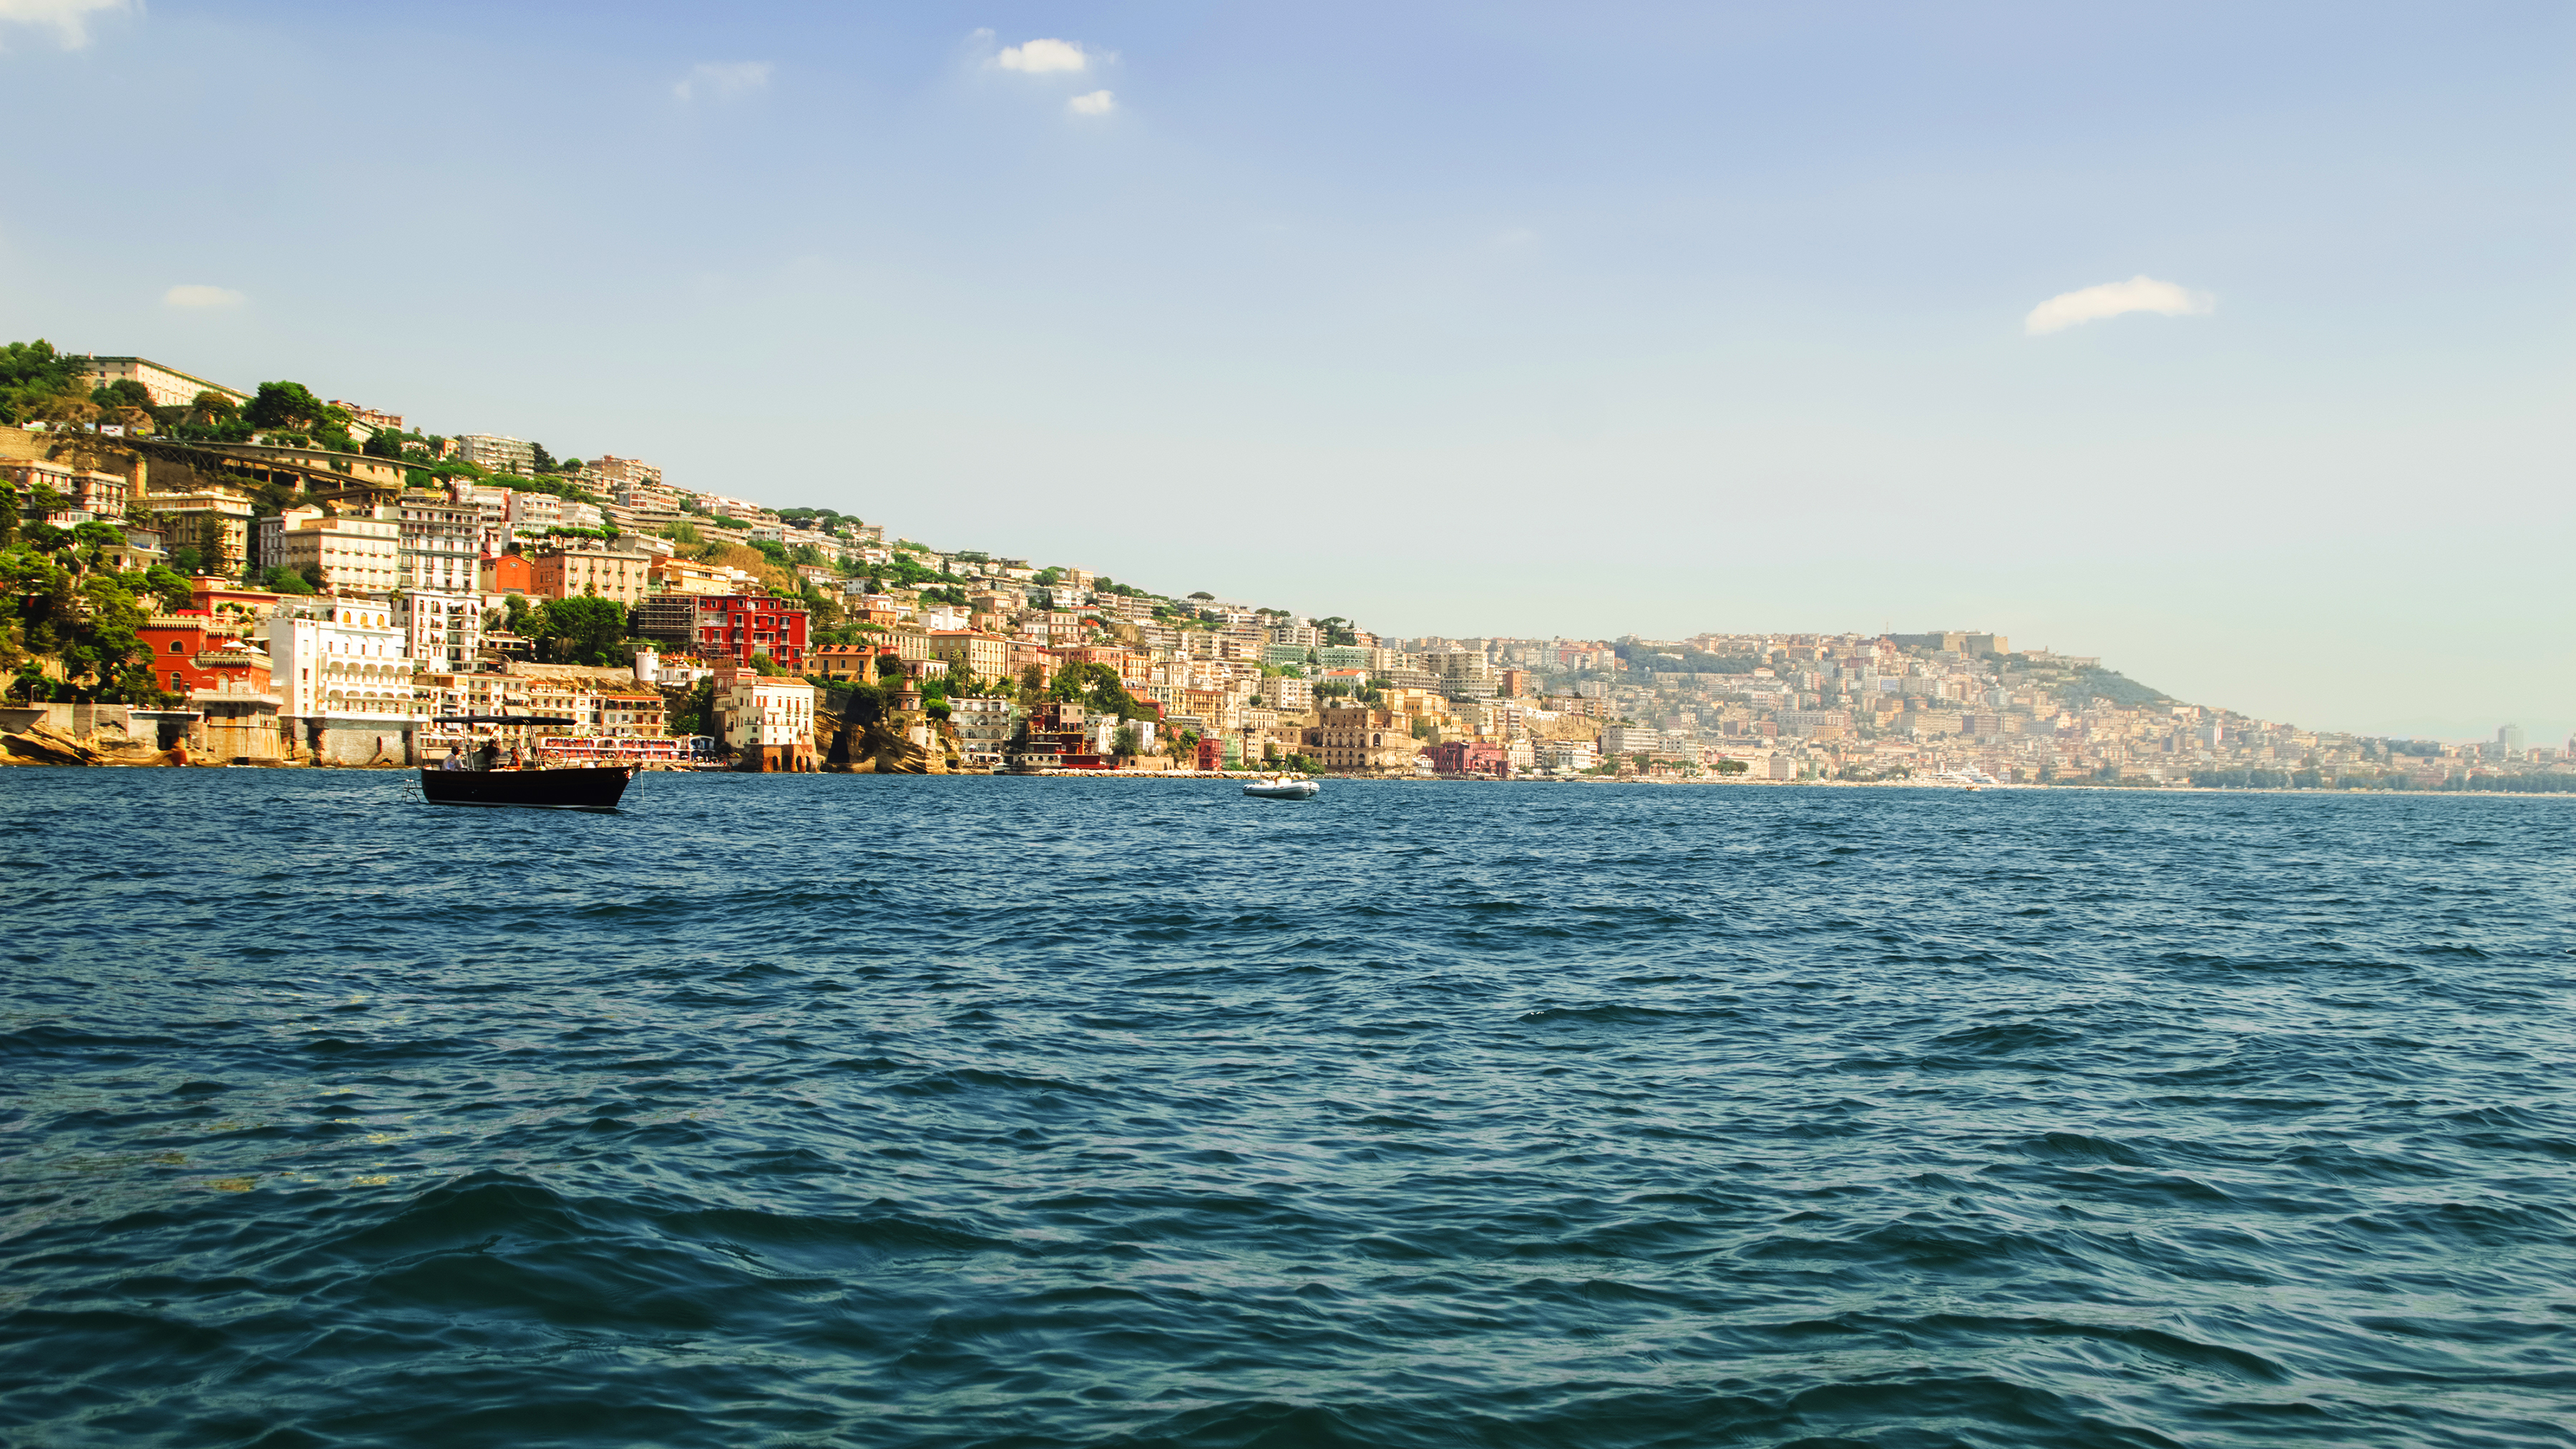 view-from-the-sea-of-posillipo-hill-naples-and-the-blue-waters-2